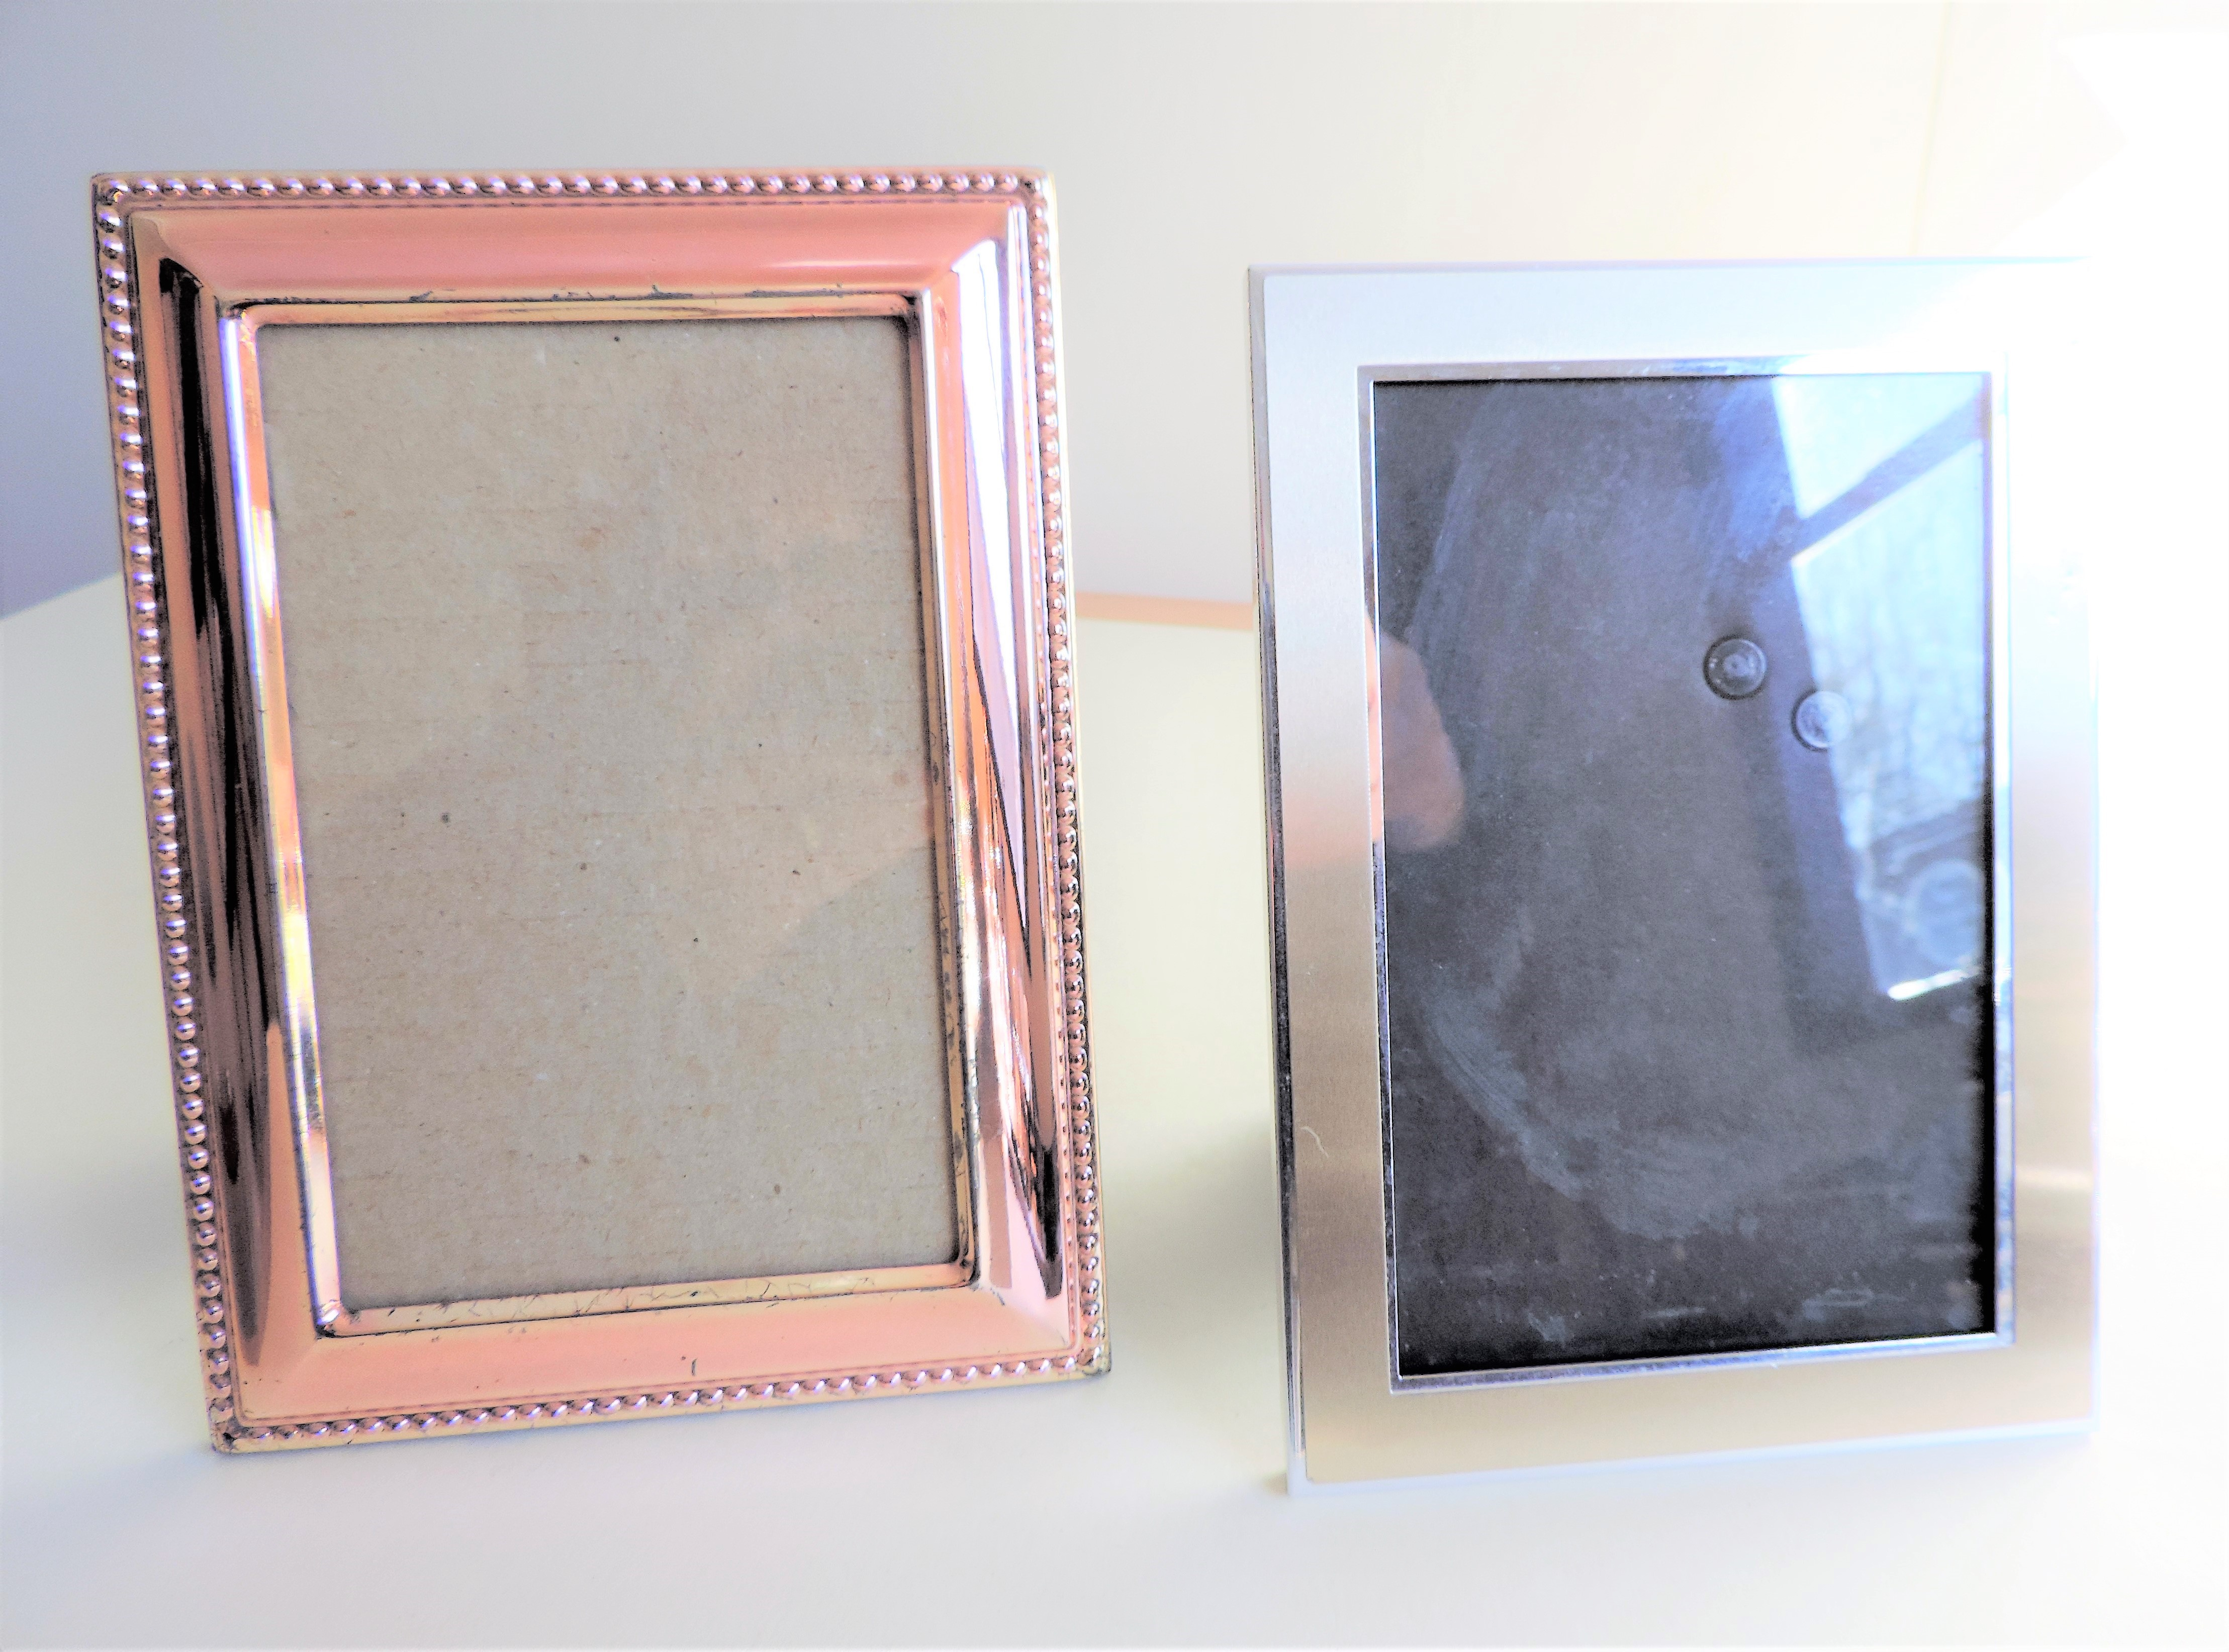 Pair of Silver Plated Photo Frames - Image 3 of 3